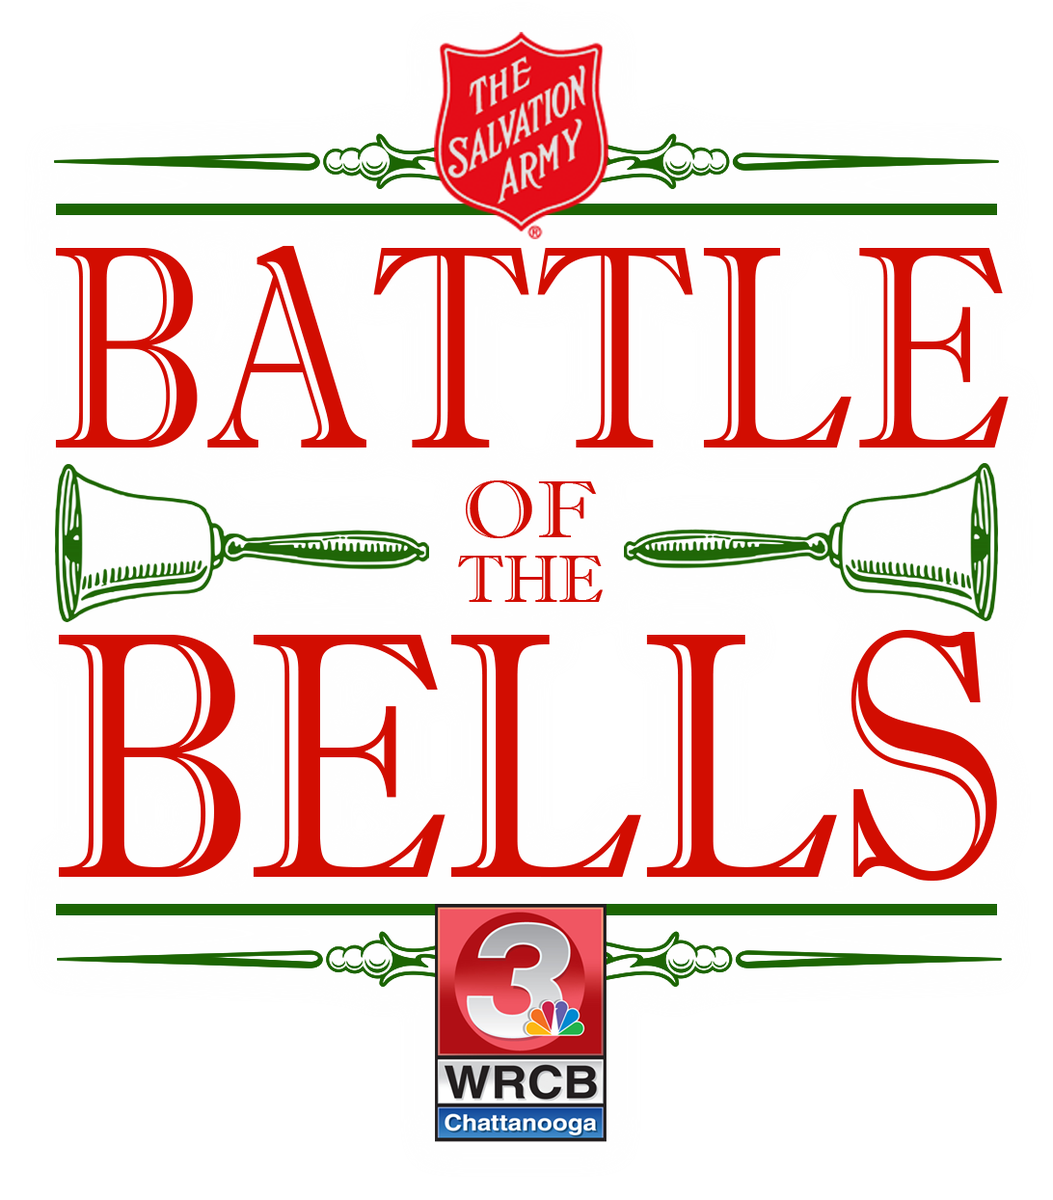 Join us at Hamilton Place Mall today as we collect donations for the Salvation Army's 'Battle of the Bells'.